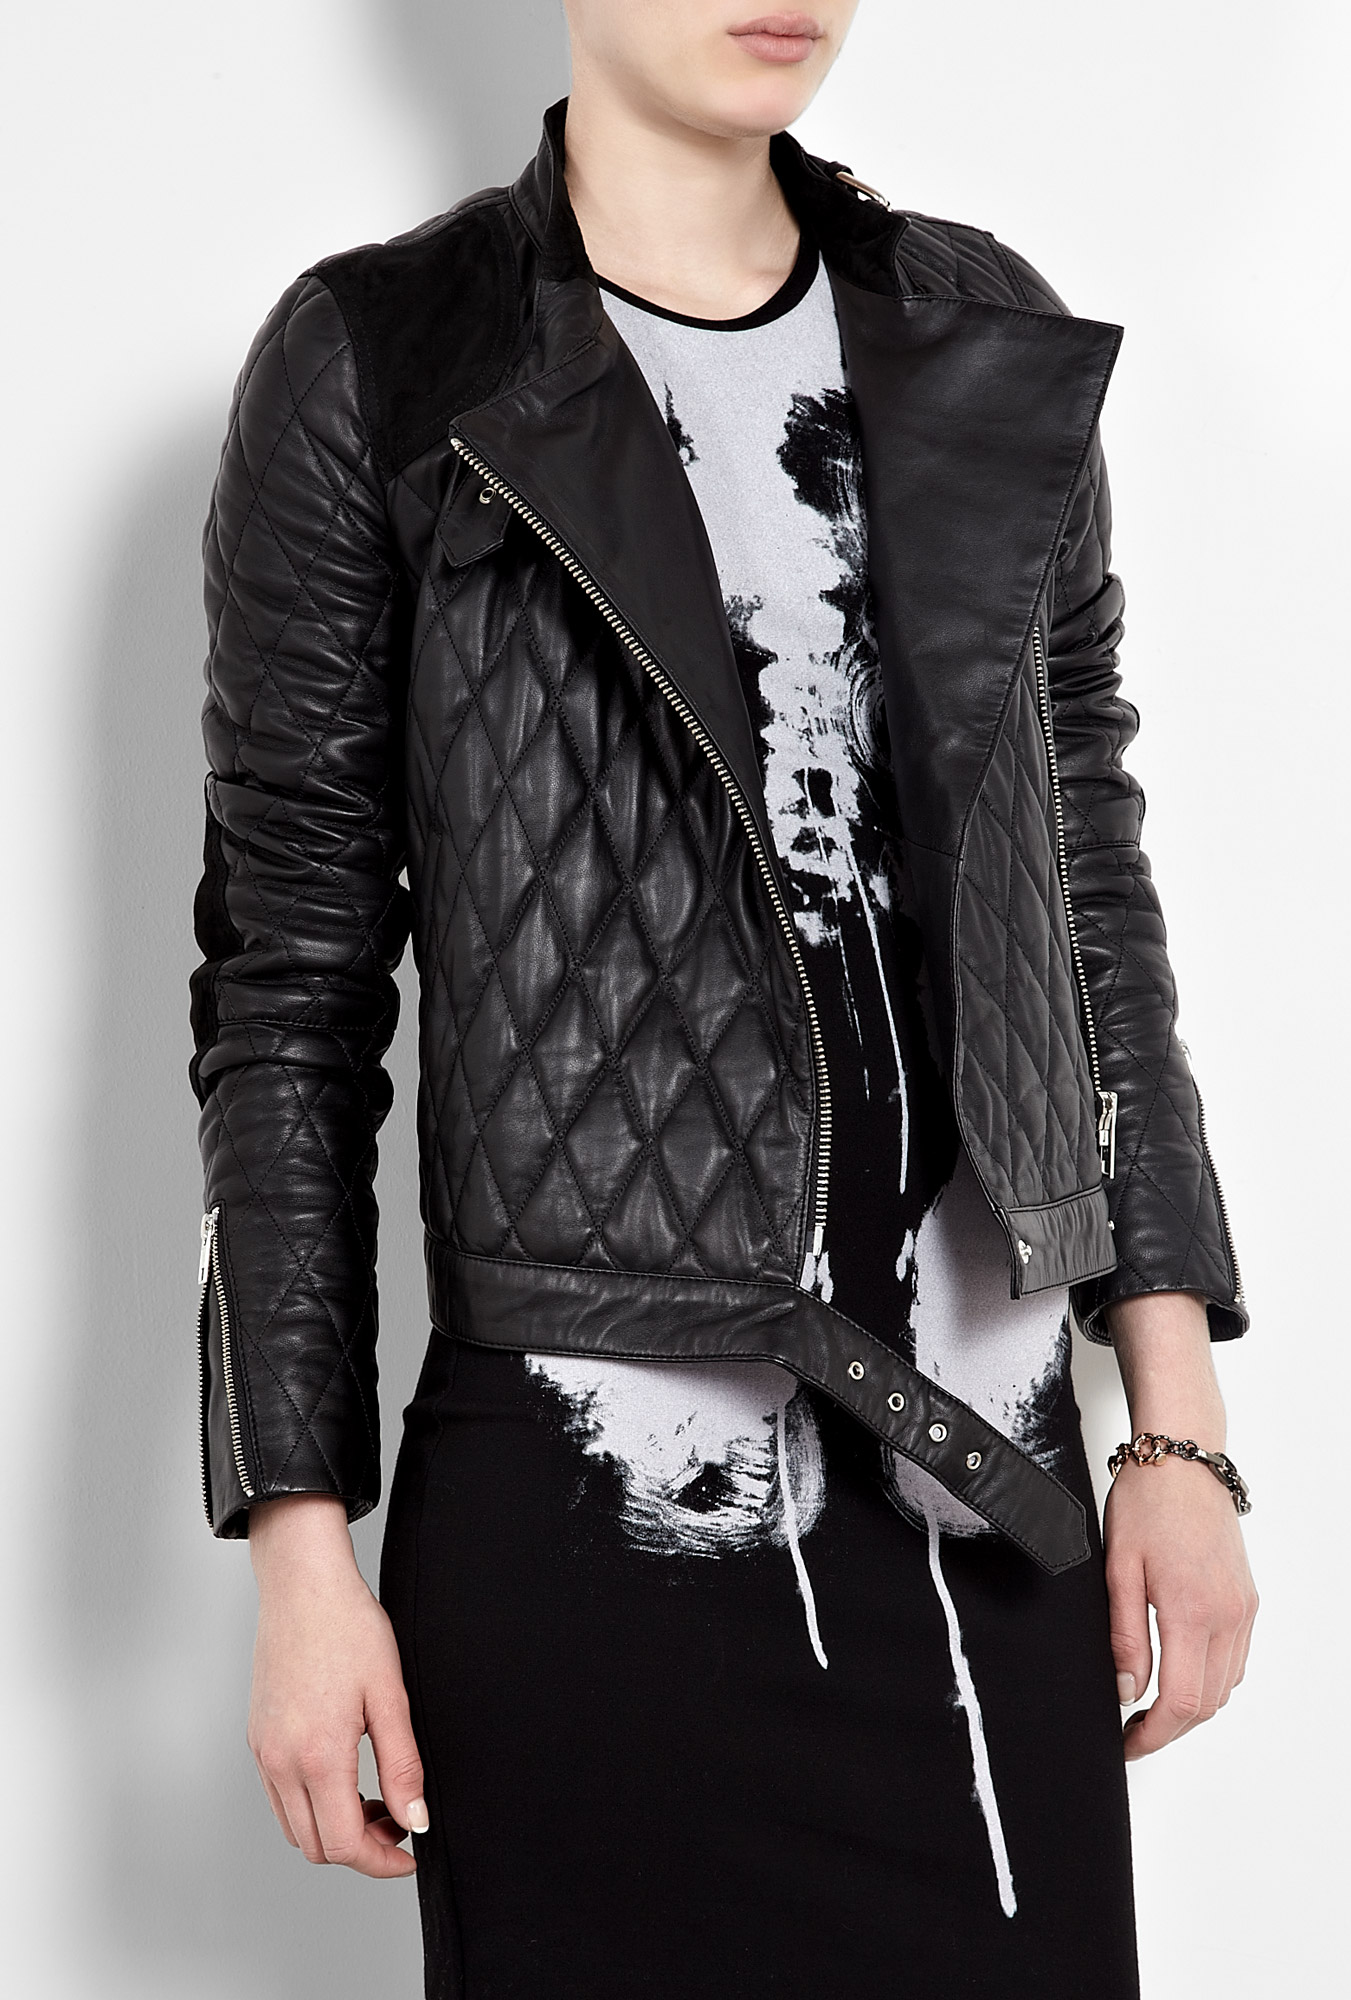 Quilted leather motorcycle jacket by mcq alexander mcqueen